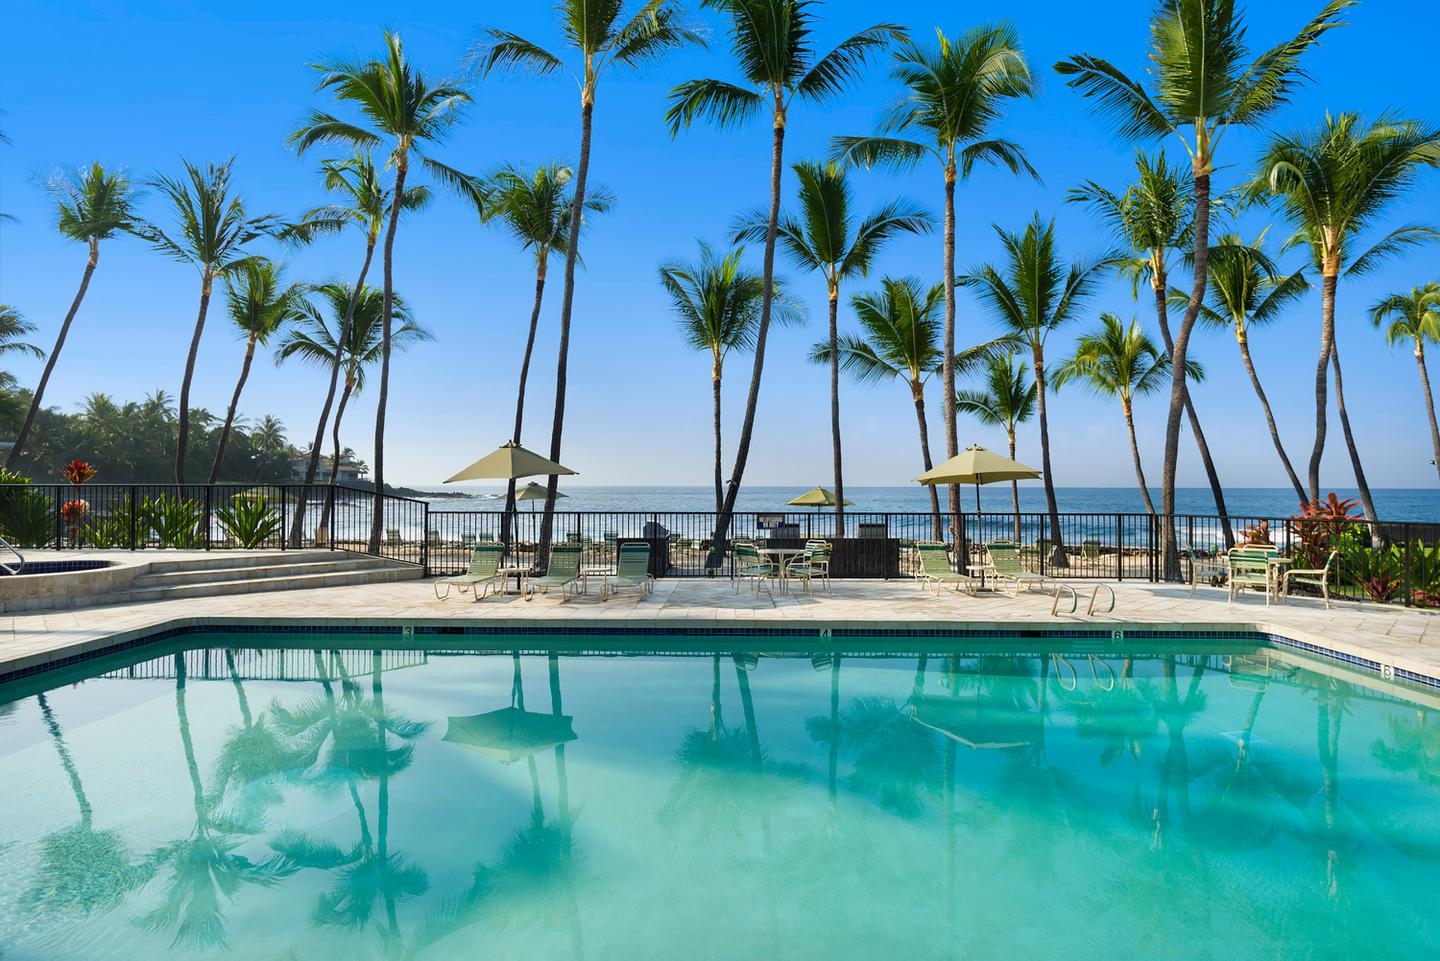 Kona Hawaii Hotels Aston By The